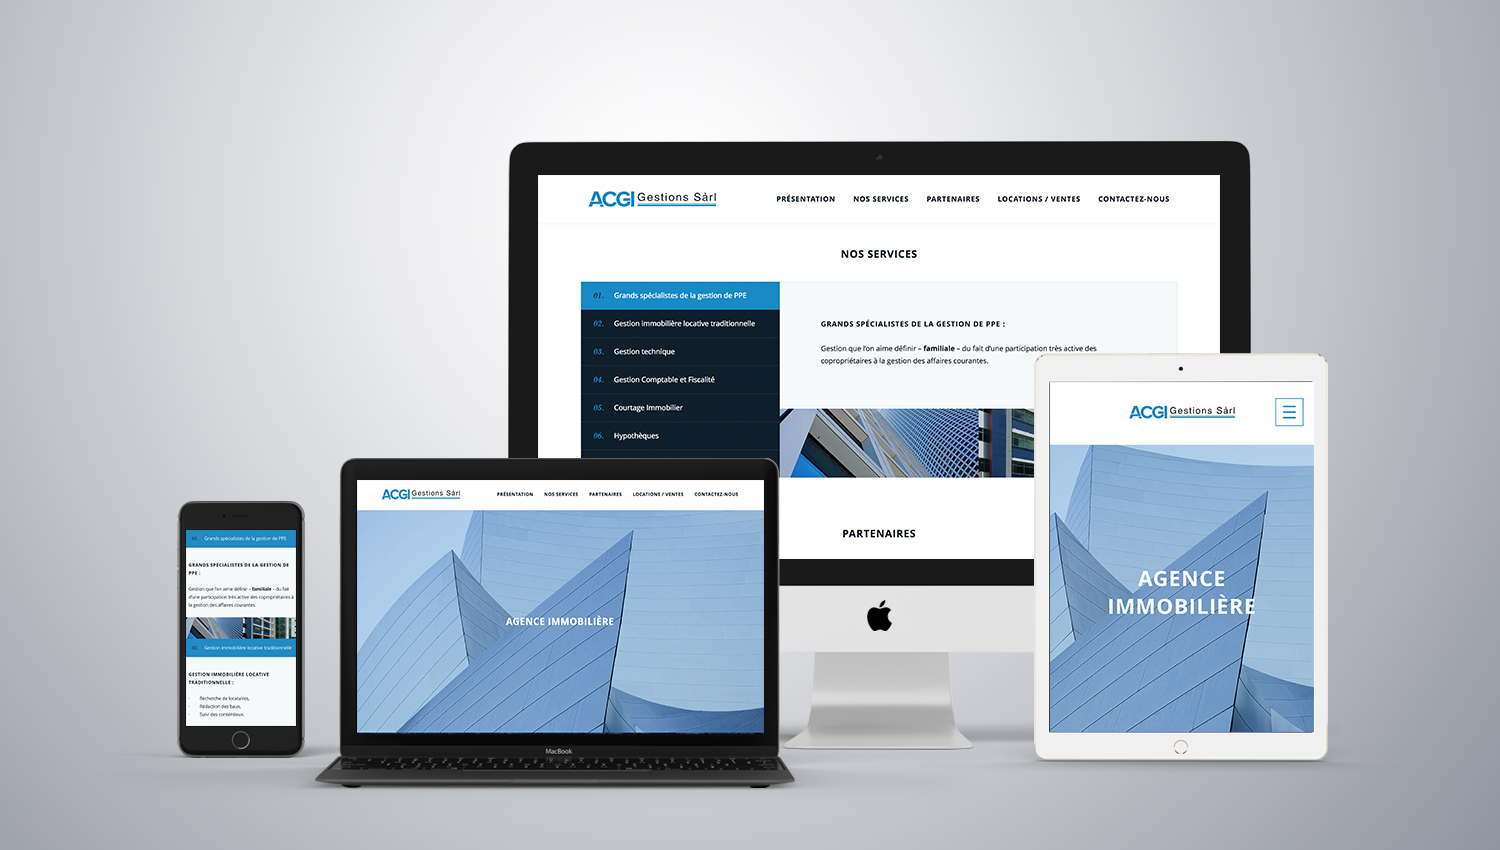 Web design desktop view for ACGI 1 by 8 Ways